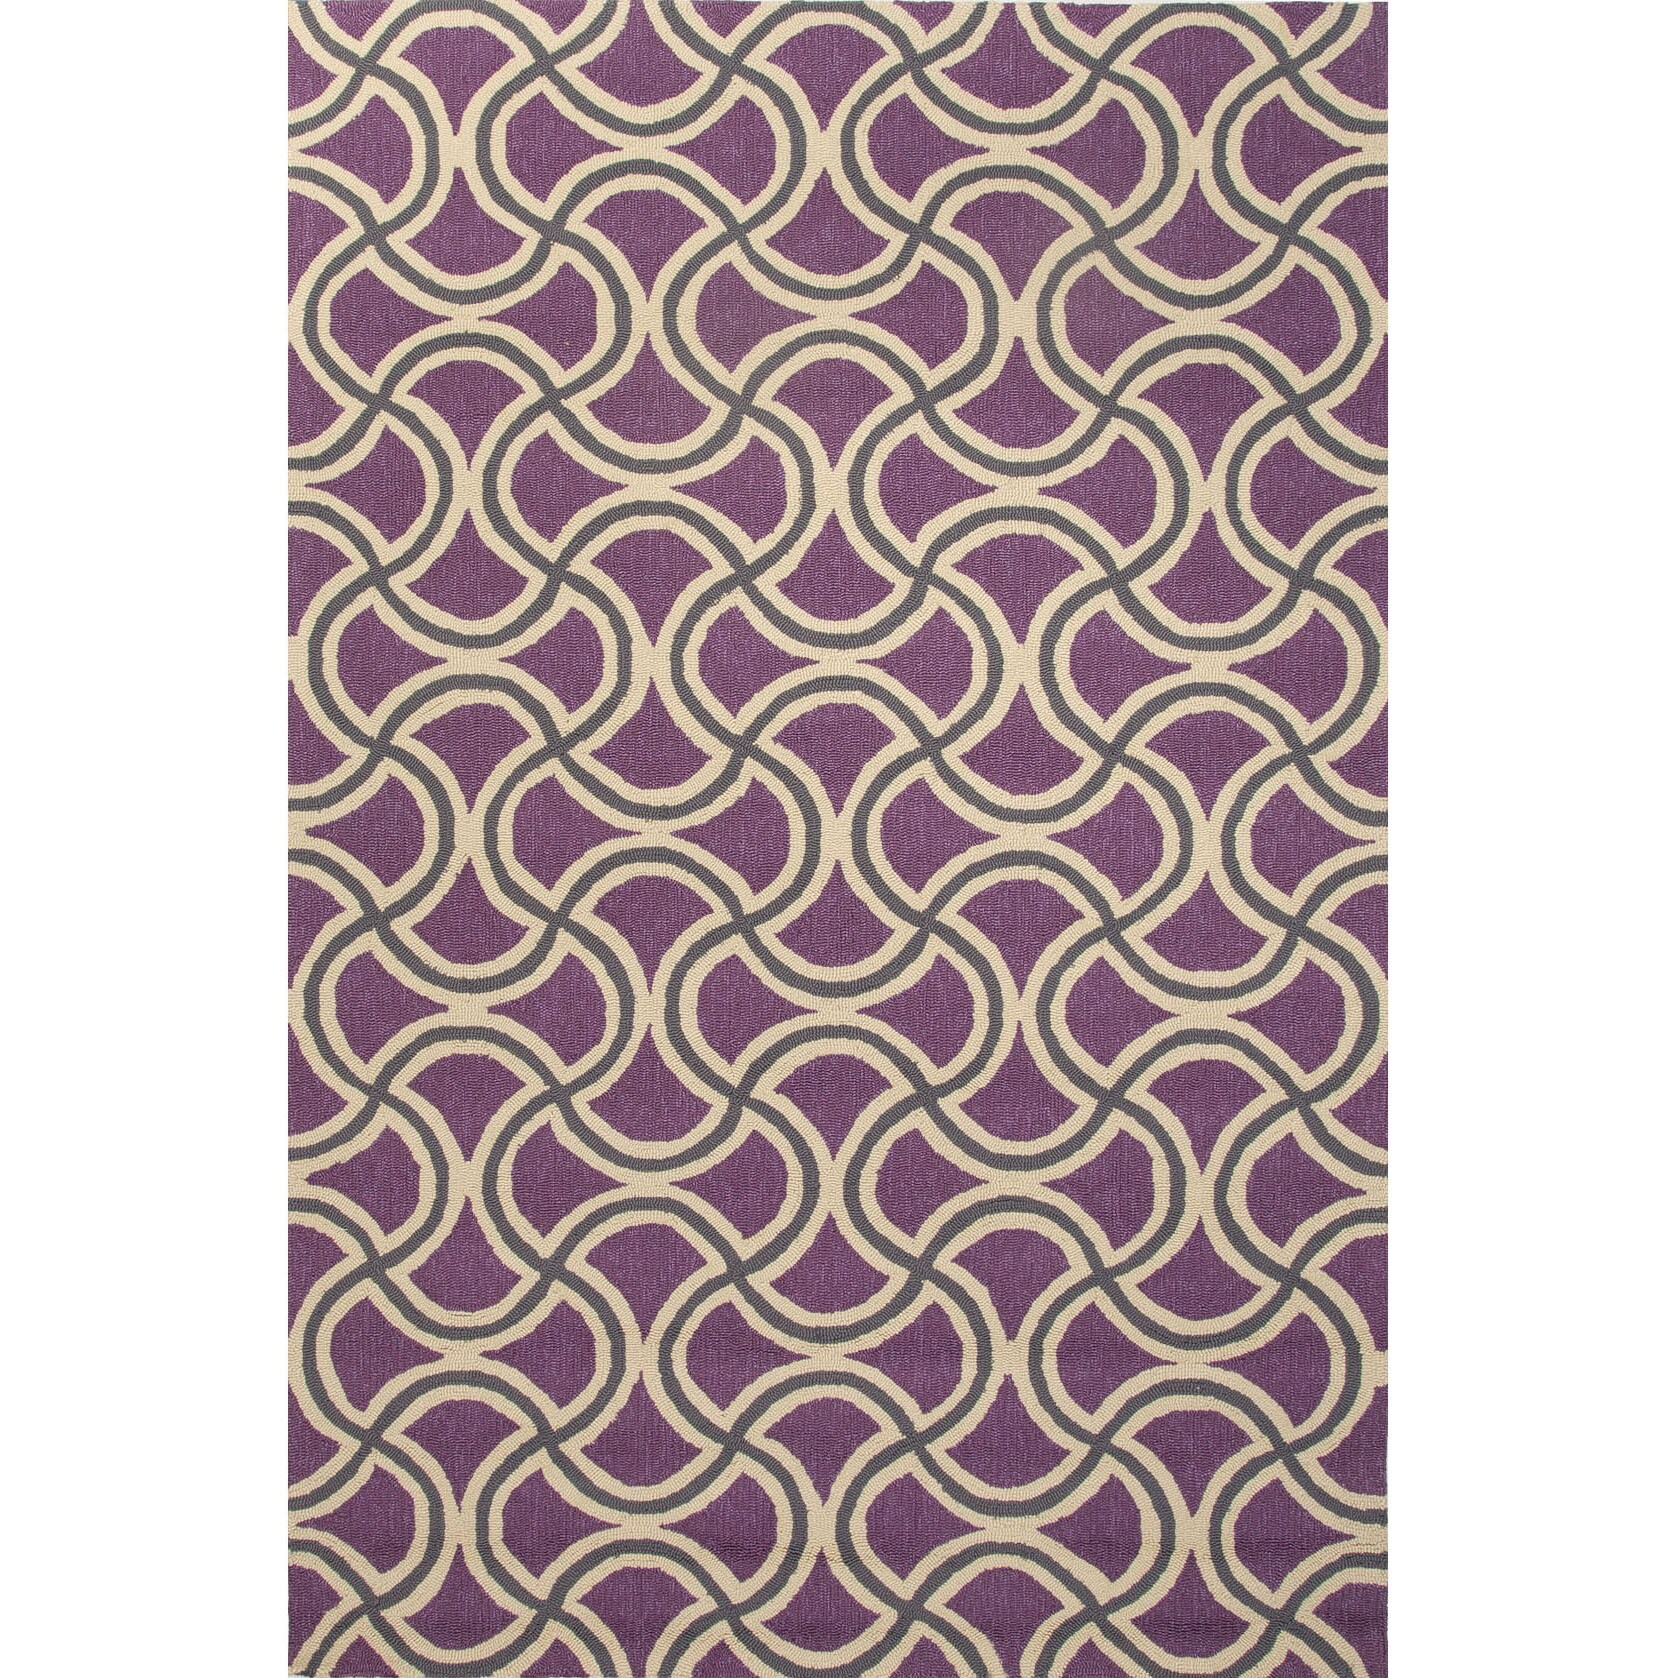 Overstock.com Geometric Pattern Purple/ Beige Polypropylene Area Rug (5'x7'6) at Sears.com